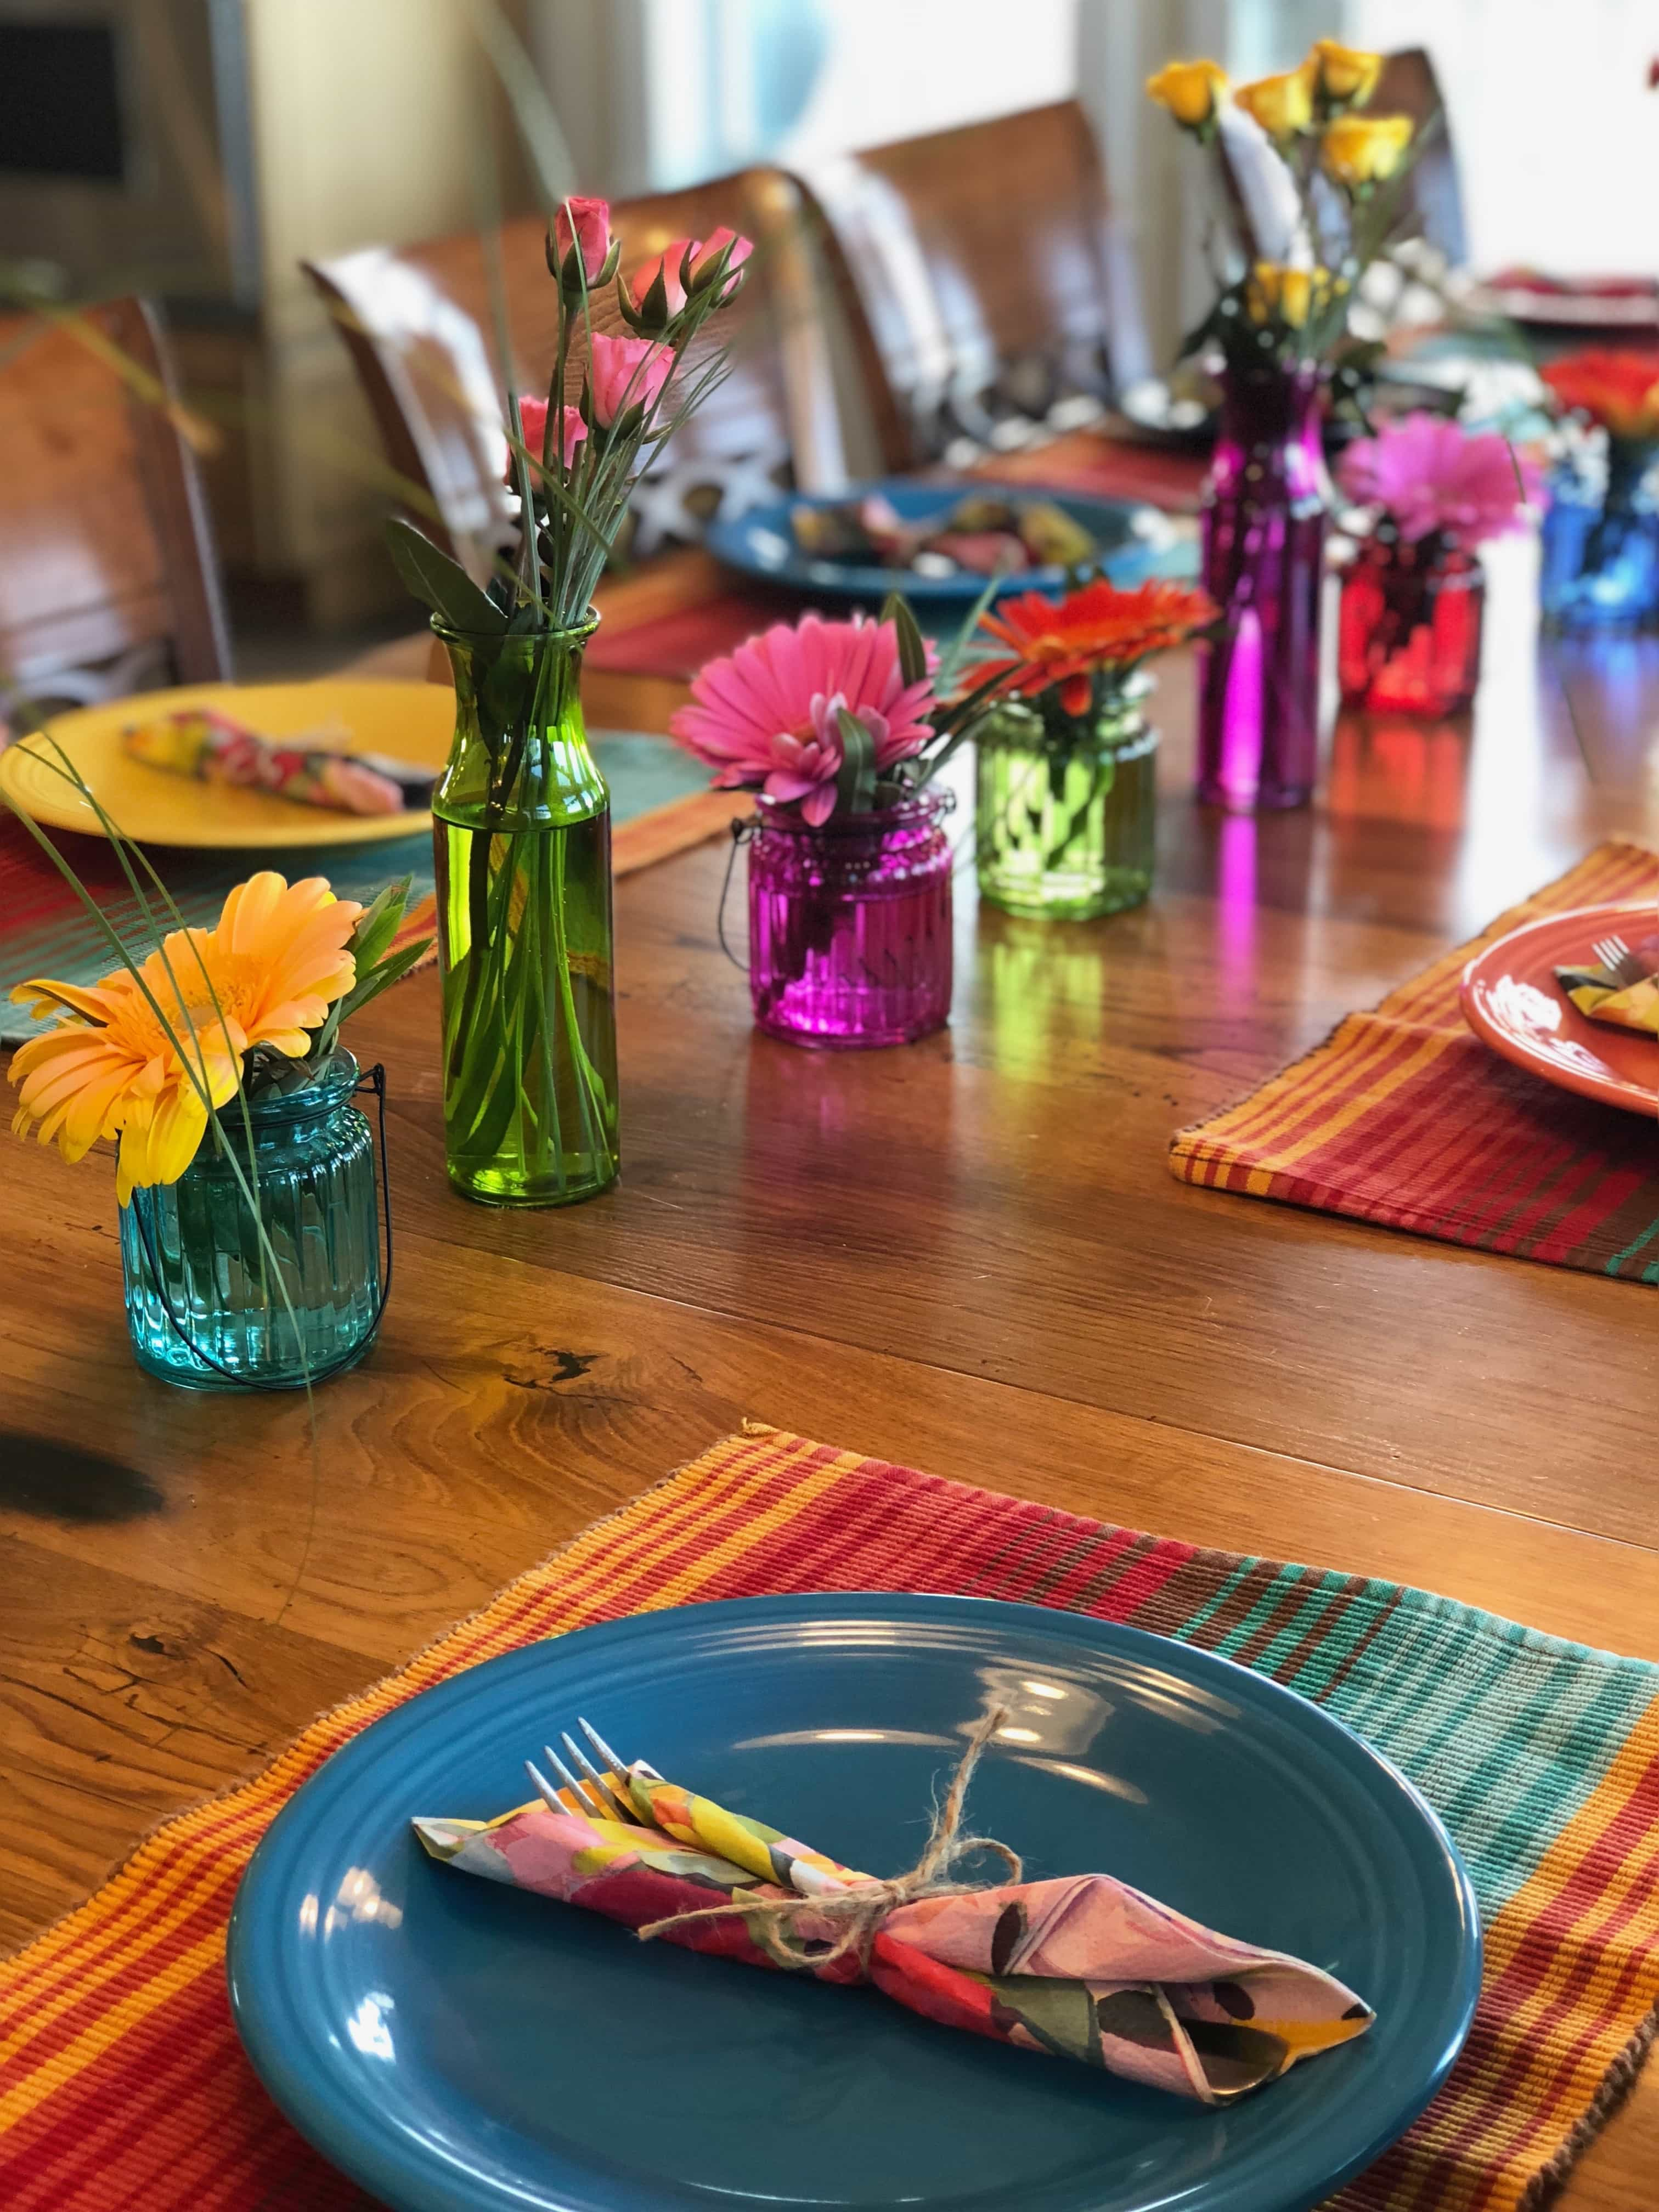 colorful and bright table decor with placemats, plates and flowers